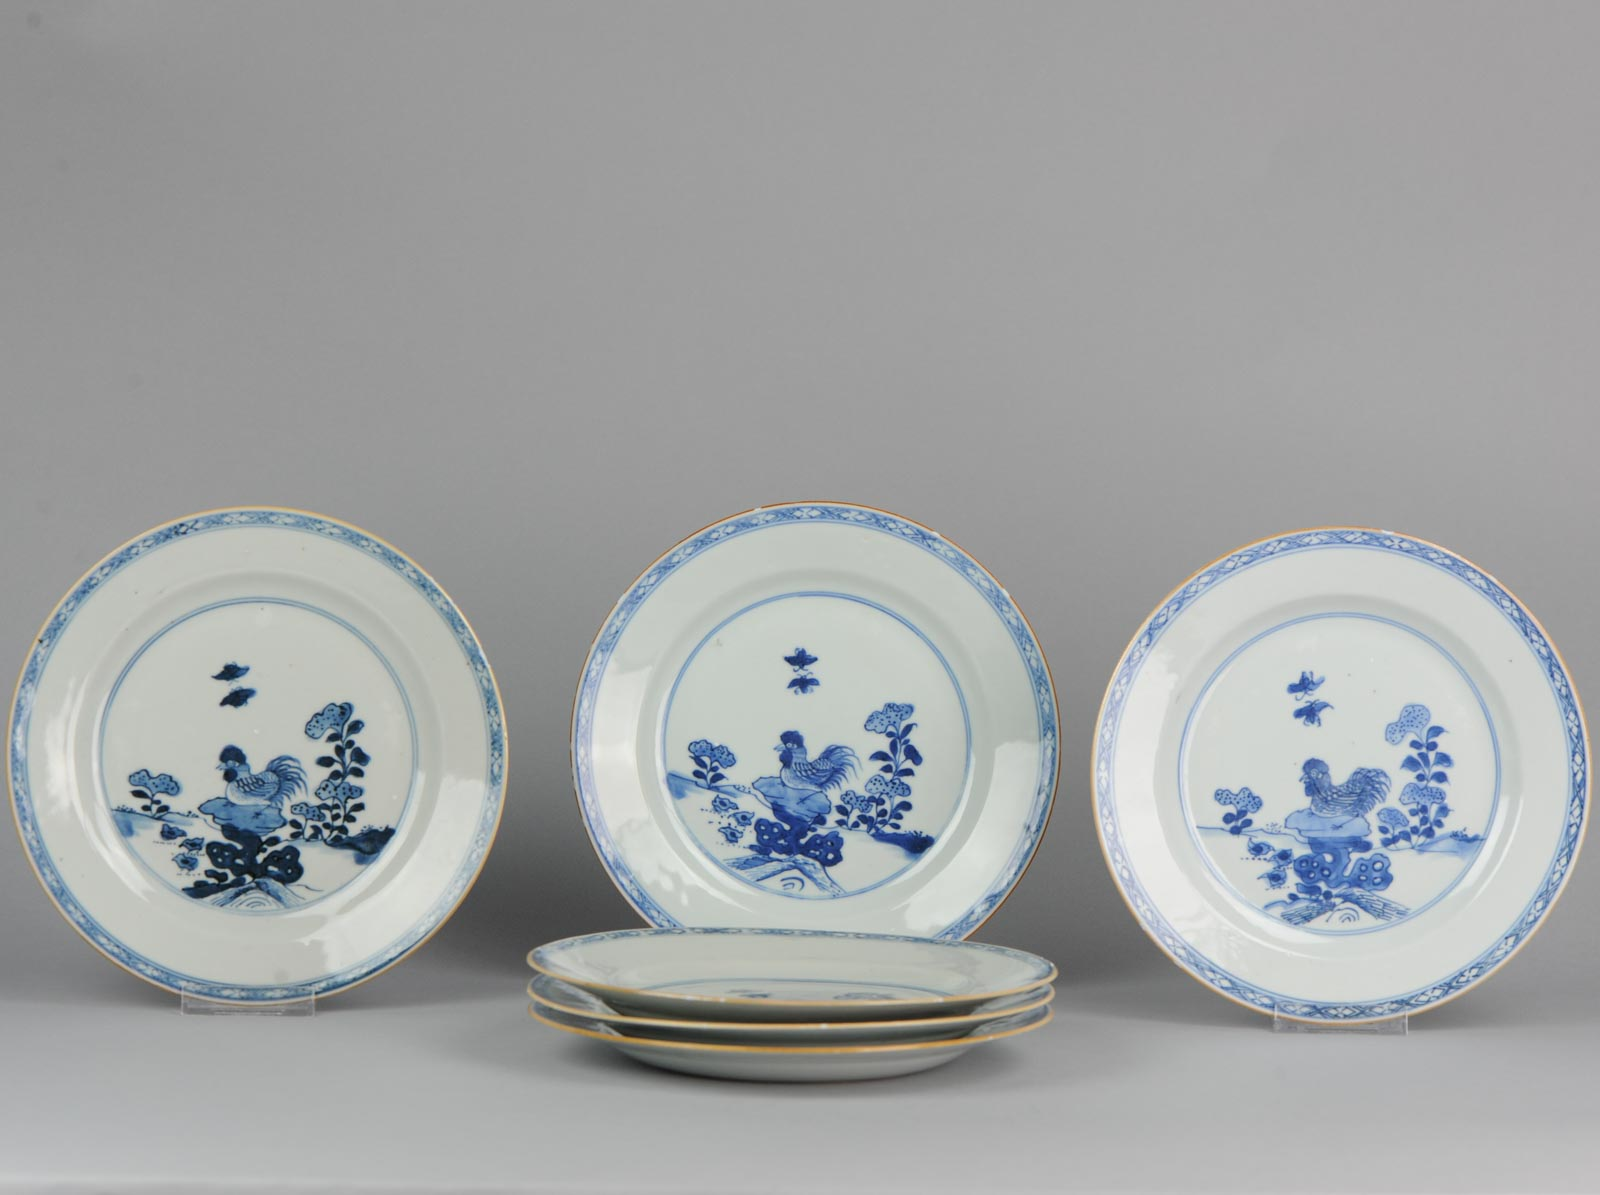 Details About Dinner Set Of 6 Antique Chinese Porcelain Plates Rooster Rock In Garden Qianlong